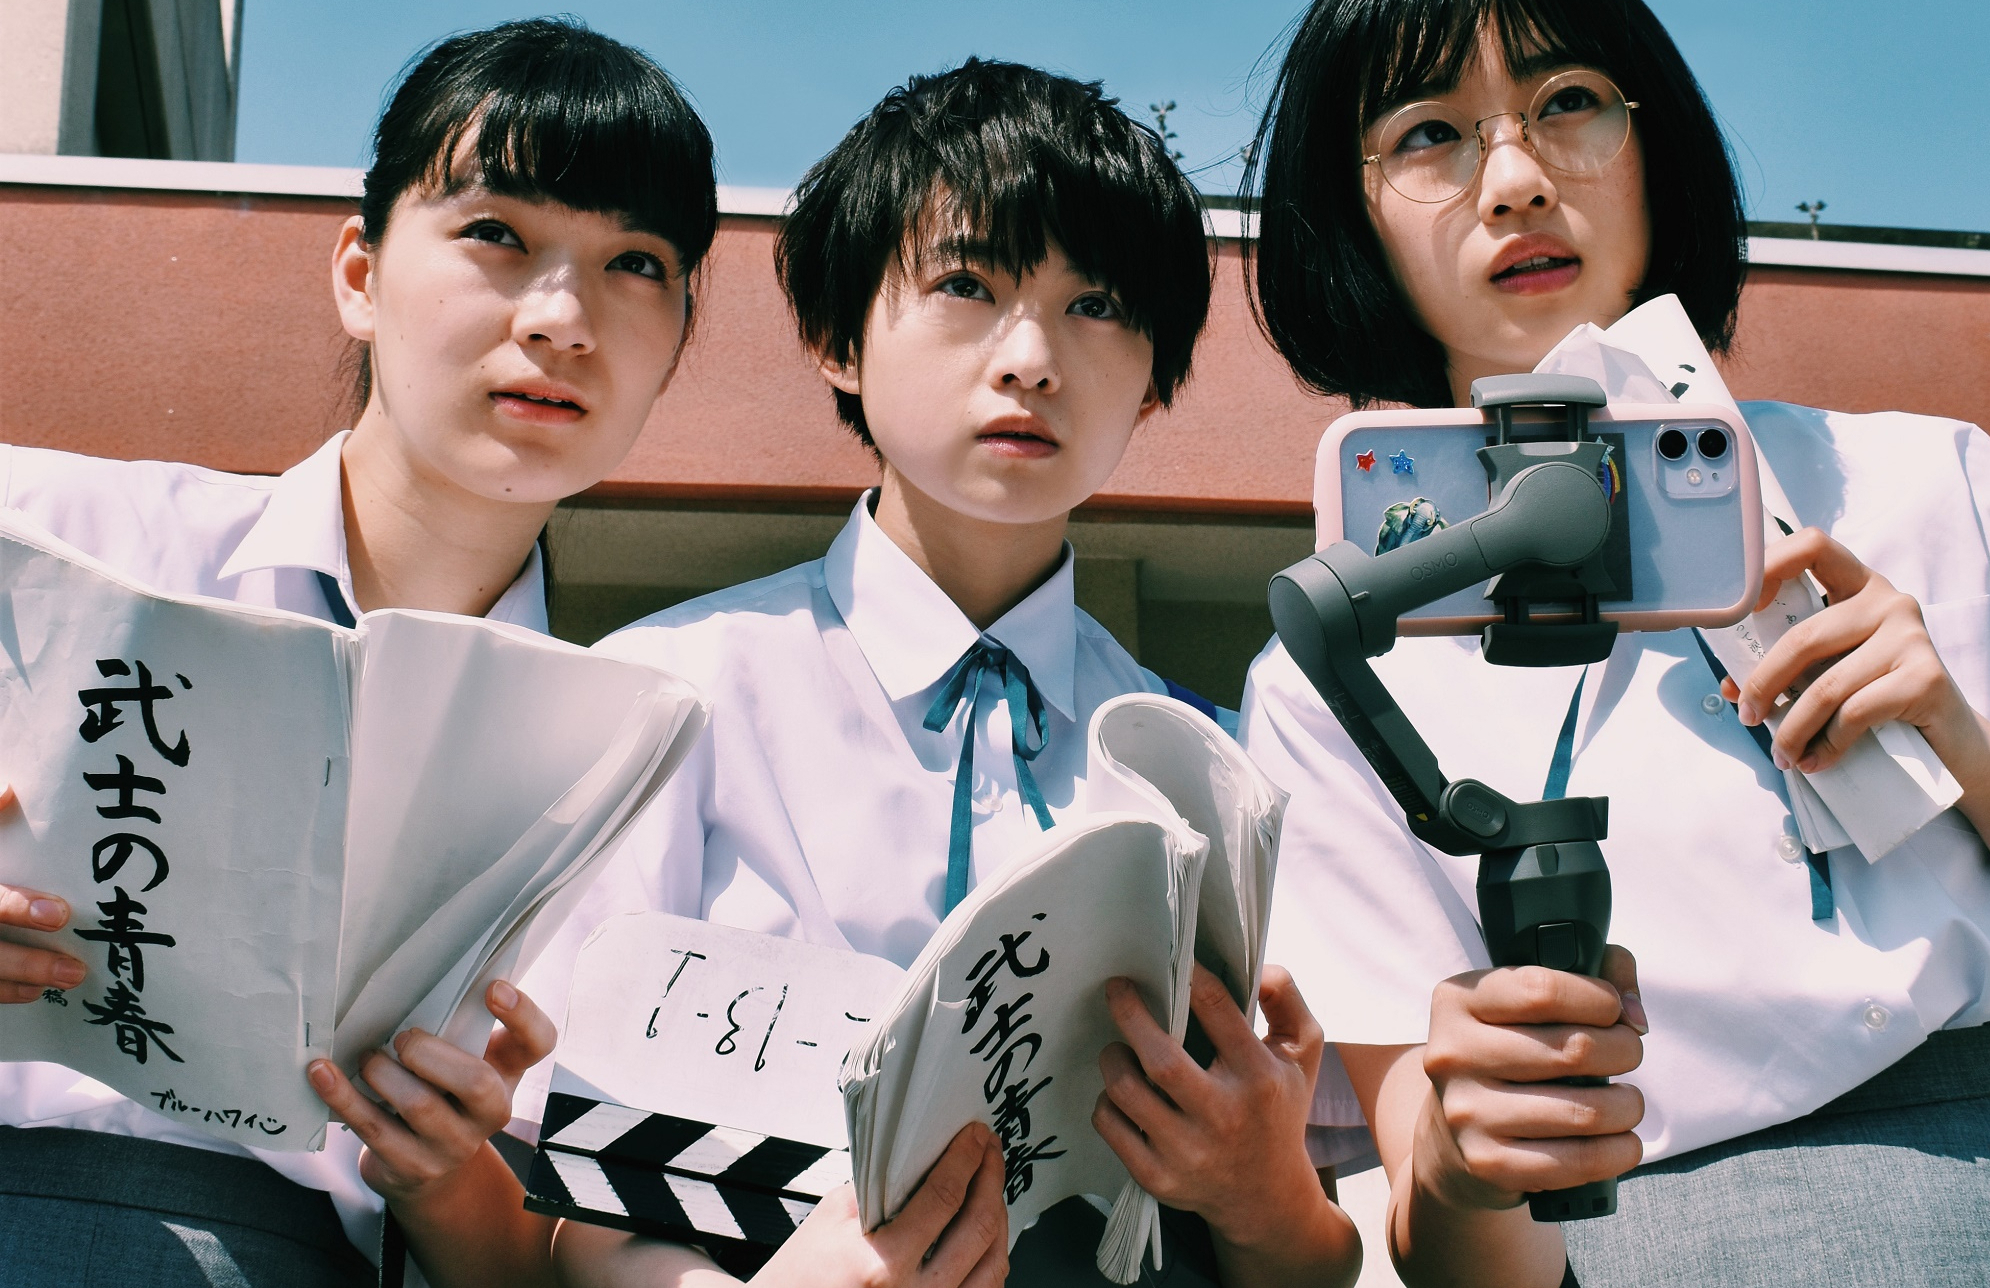 It's a Summer Film (2021) by Soushi Matsumoto